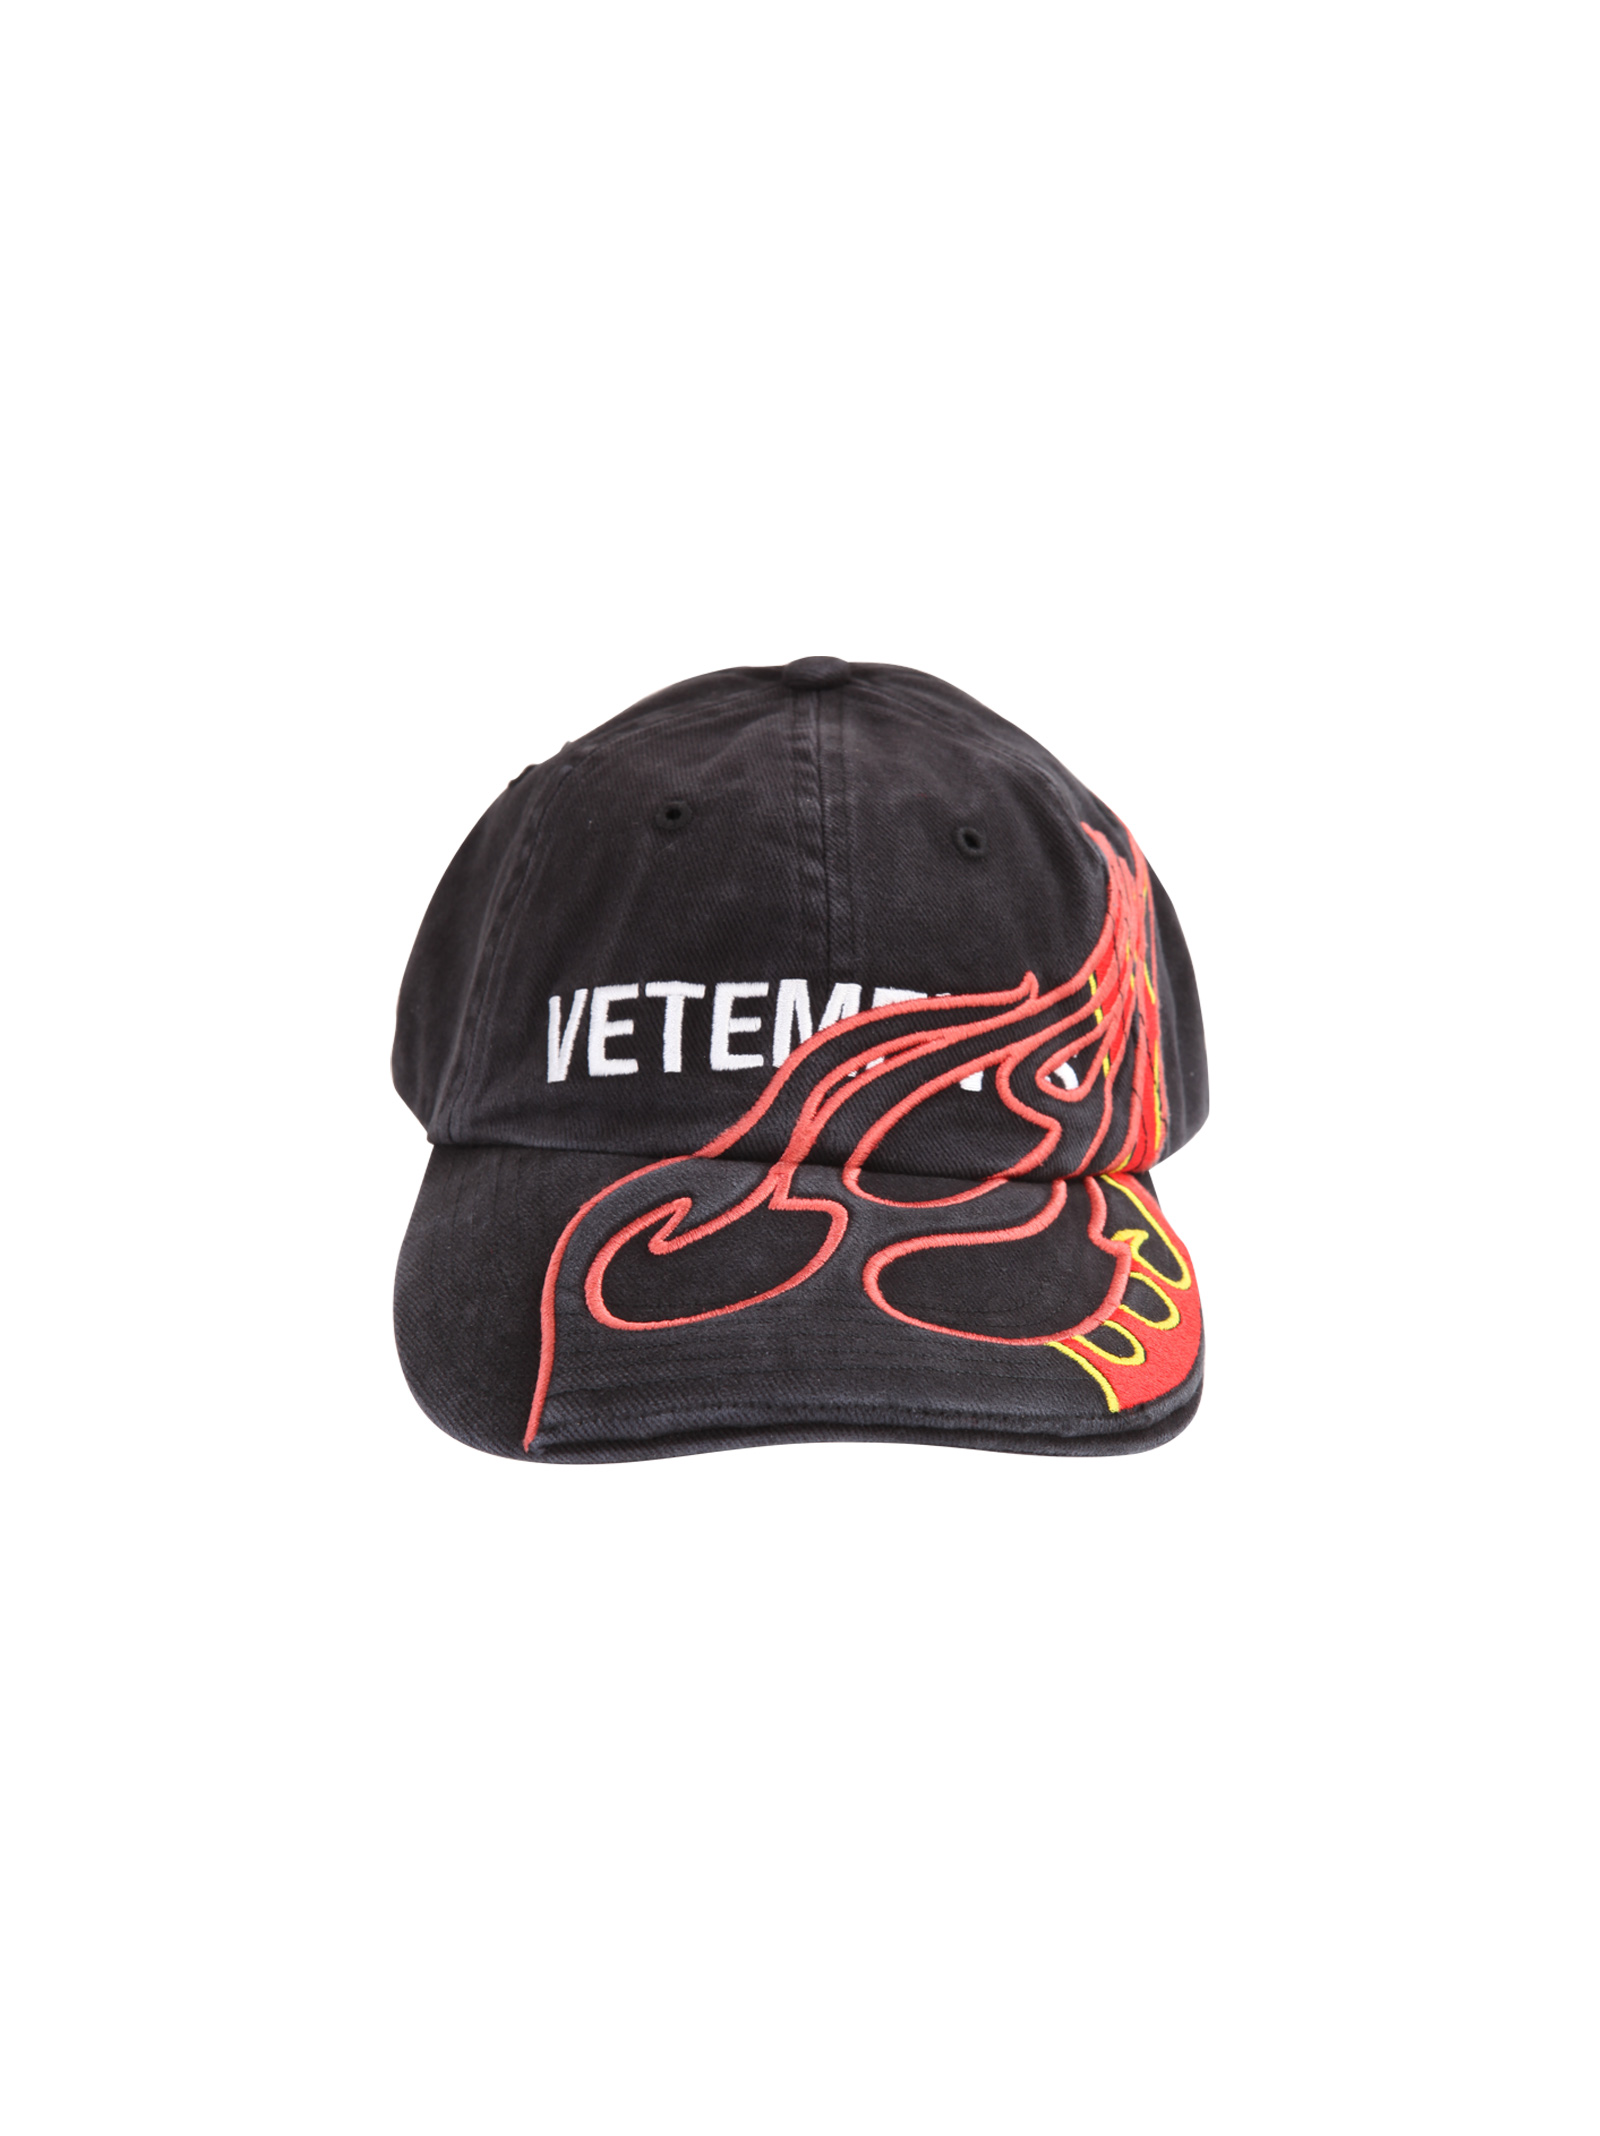 9a842cffe6938d Vetements. Black Vetements X Reebok baseball cap with embroidered flames ...